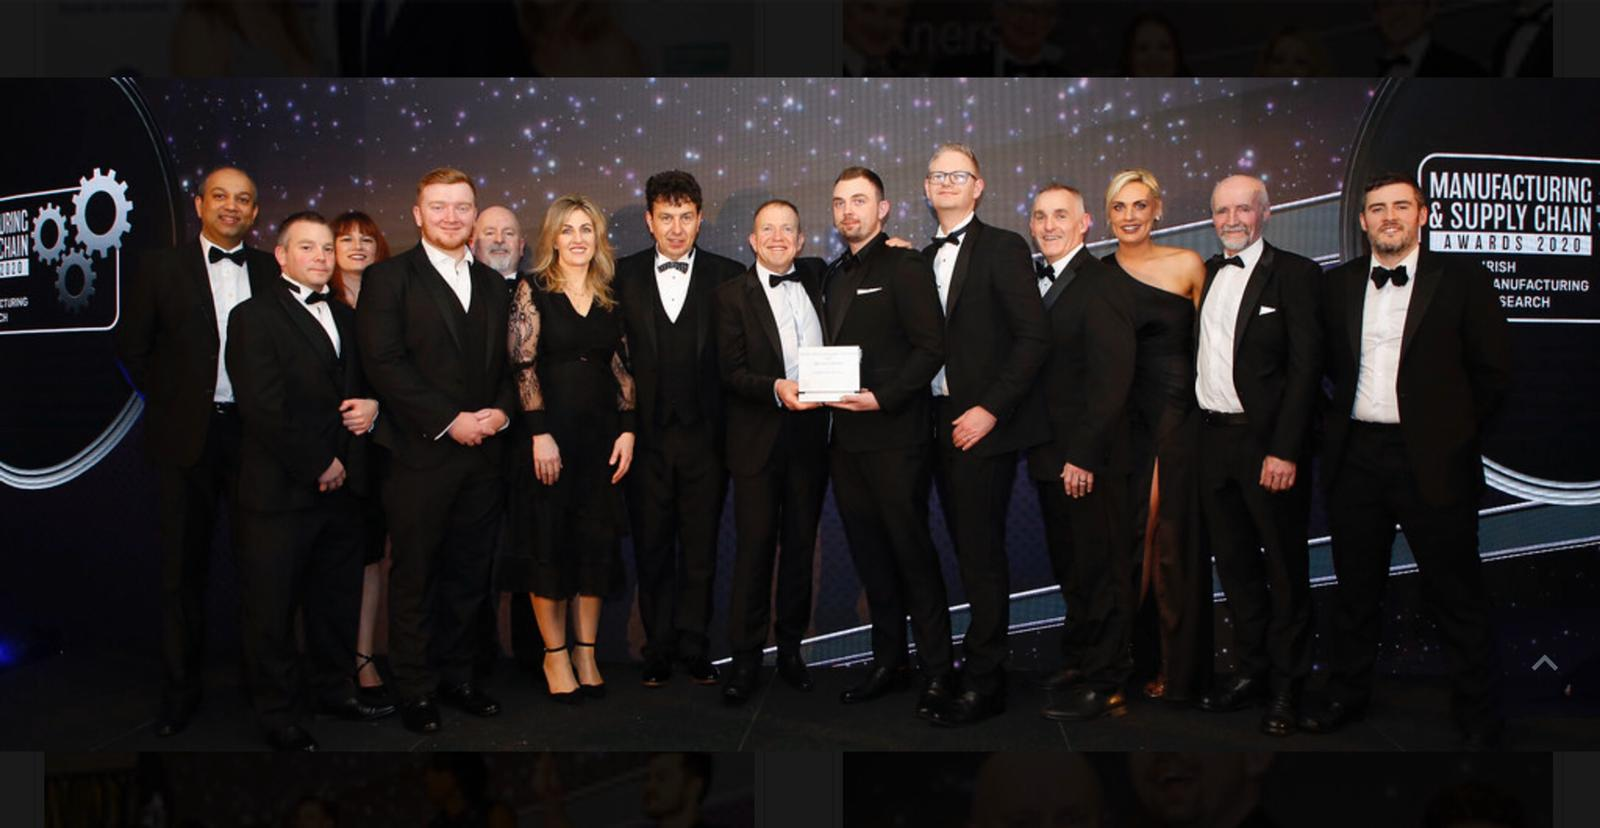 The ITS and Boston Scientific teams - winners of the Best Use of Robotics at the IMR Manufacturing Awards 2020